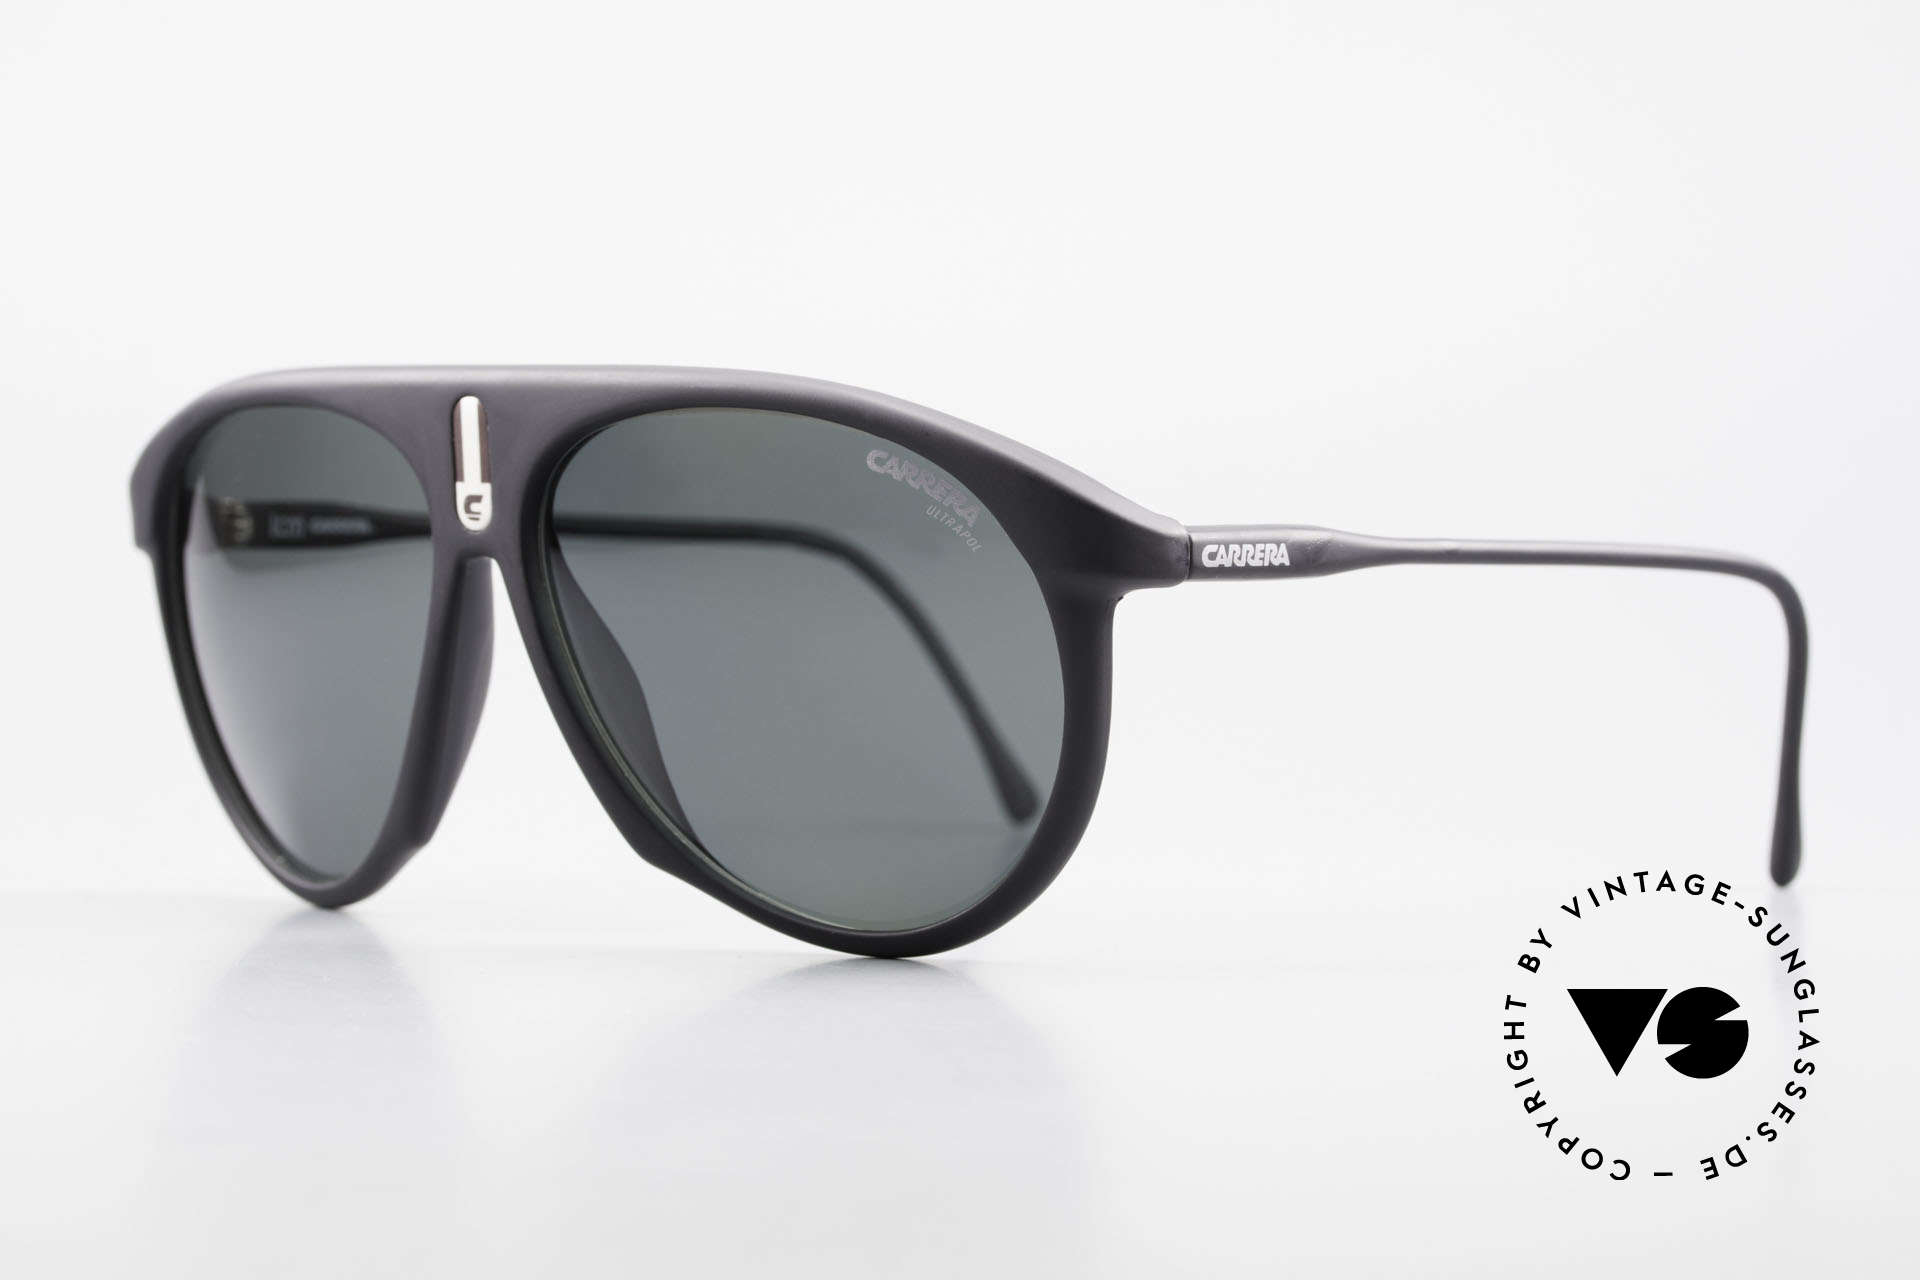 Carrera 5427 80's Polarized Sports Shades, state-of-the-art lenses (2 sets) & with orig. case, Made for Men and Women